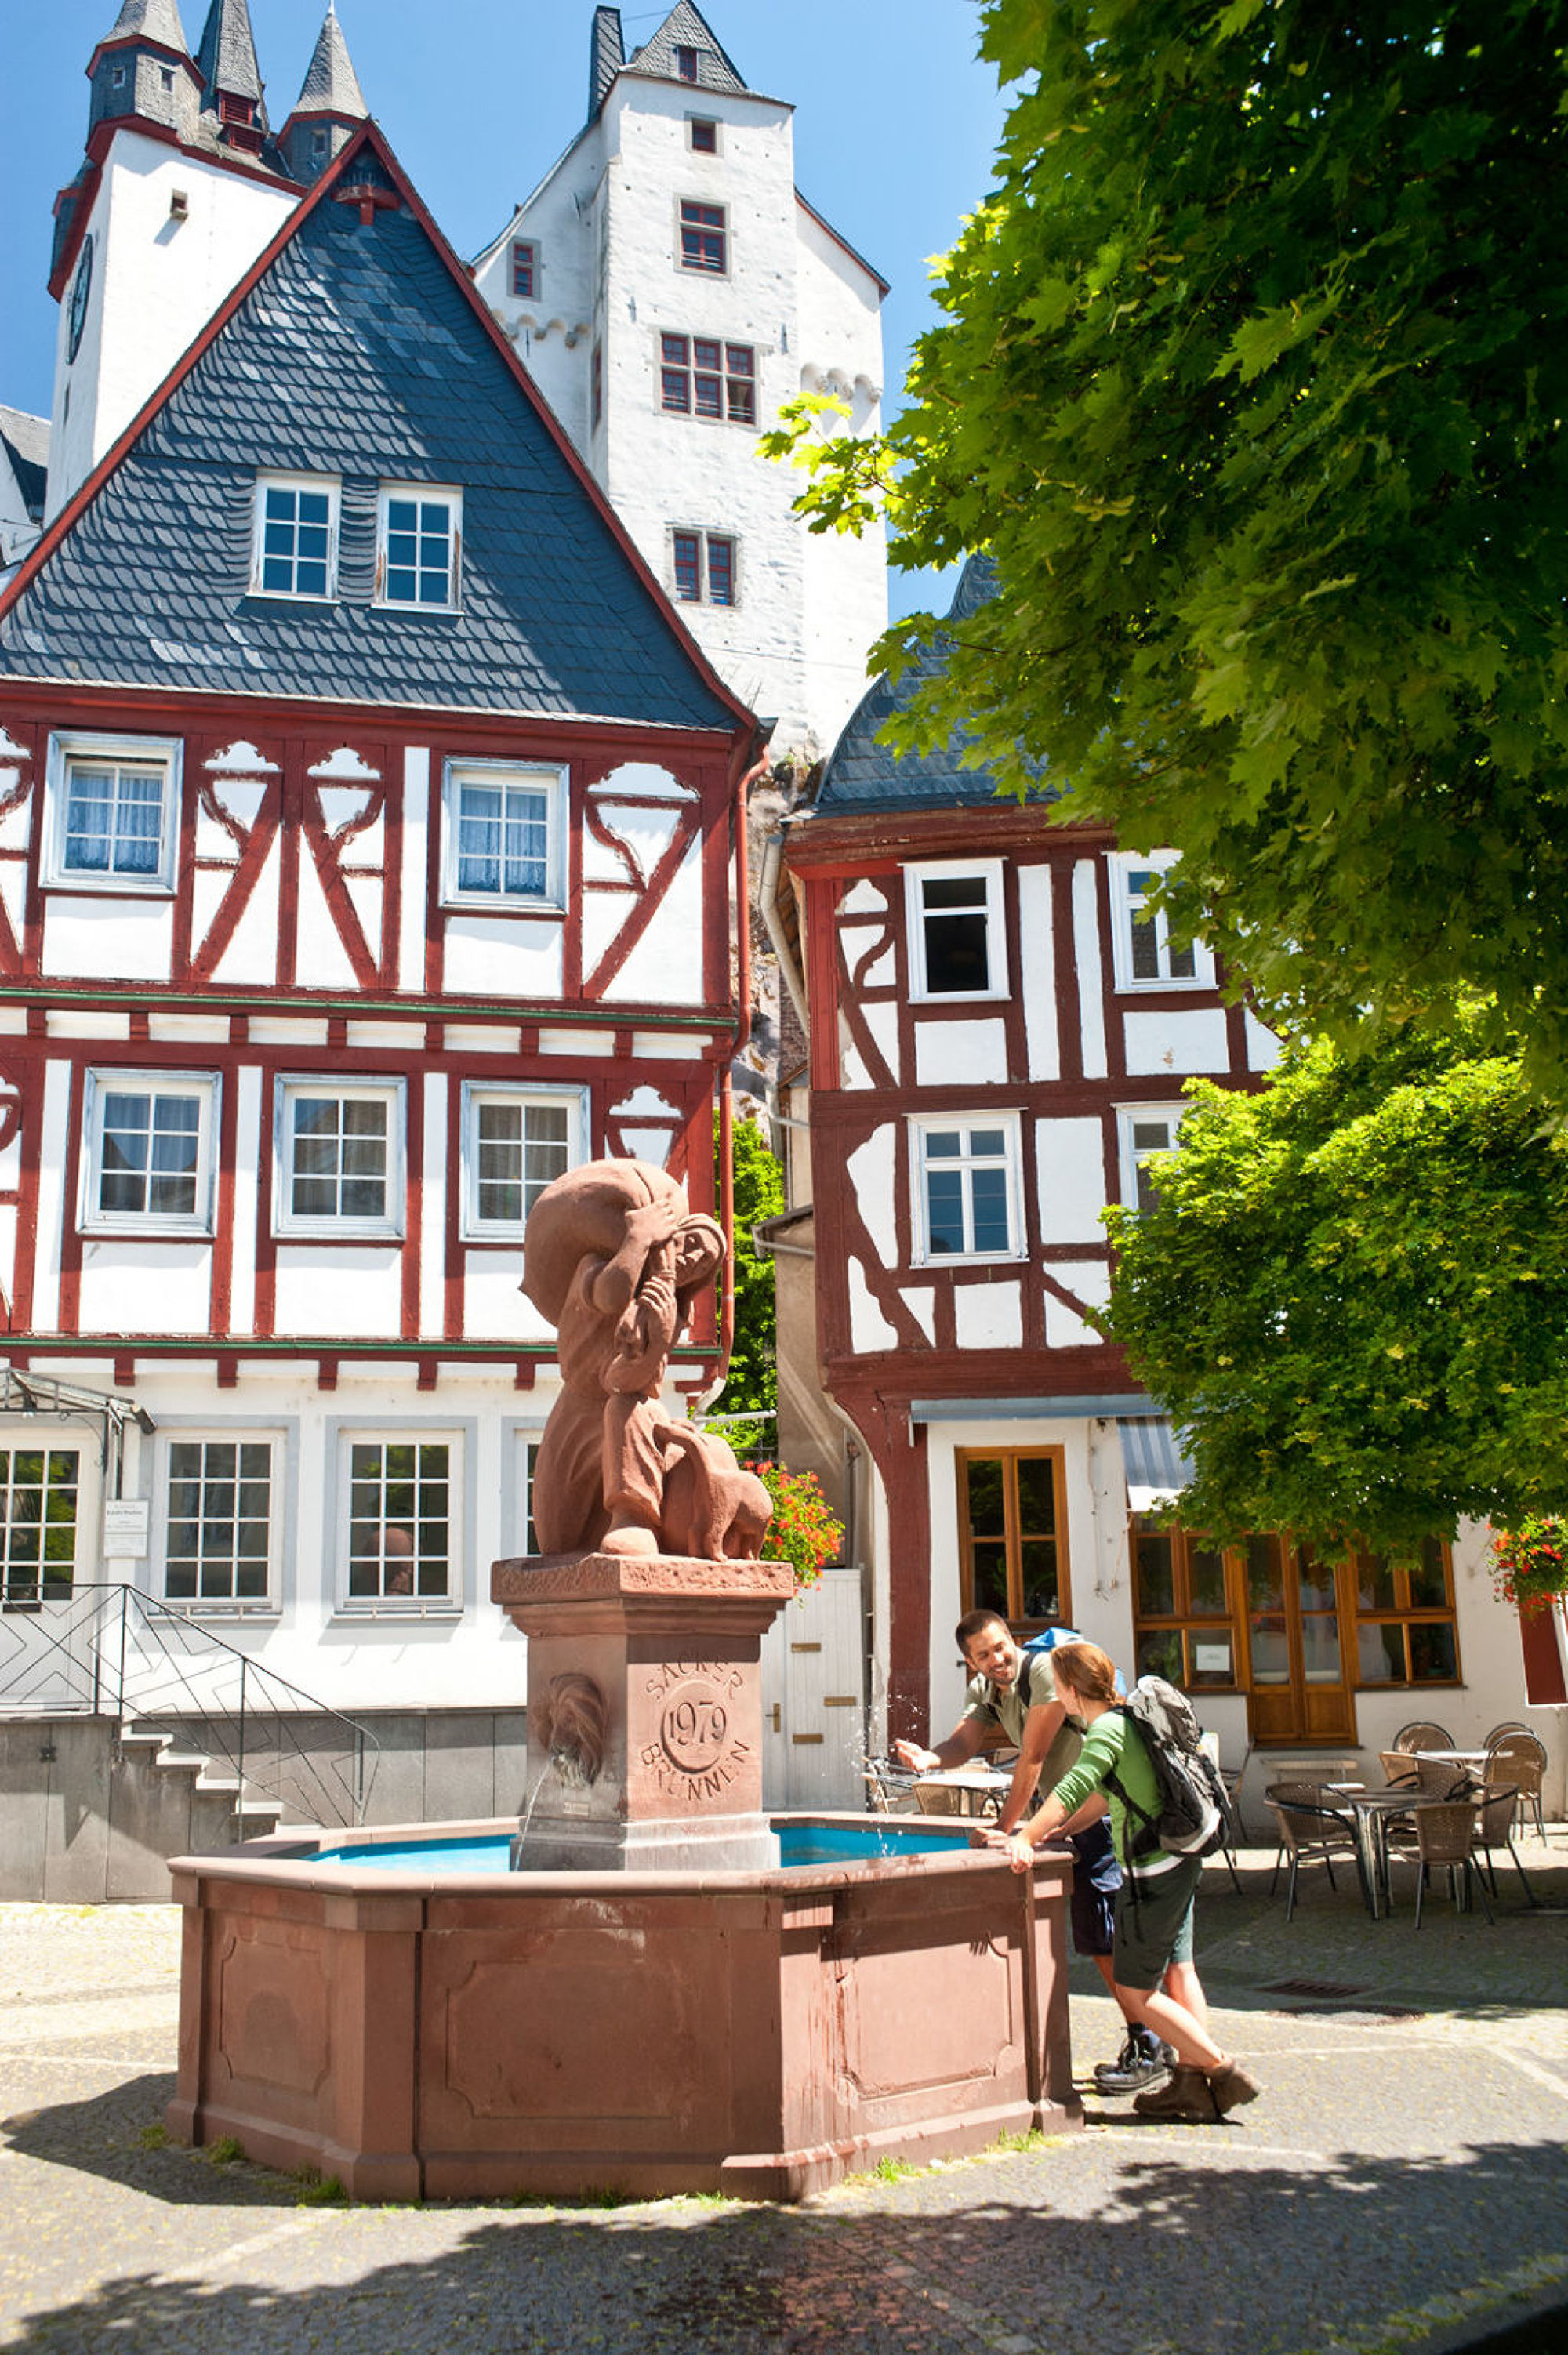 Hiker at the Säcker fountain in front of half-timbered houses in Diez, Lahntal